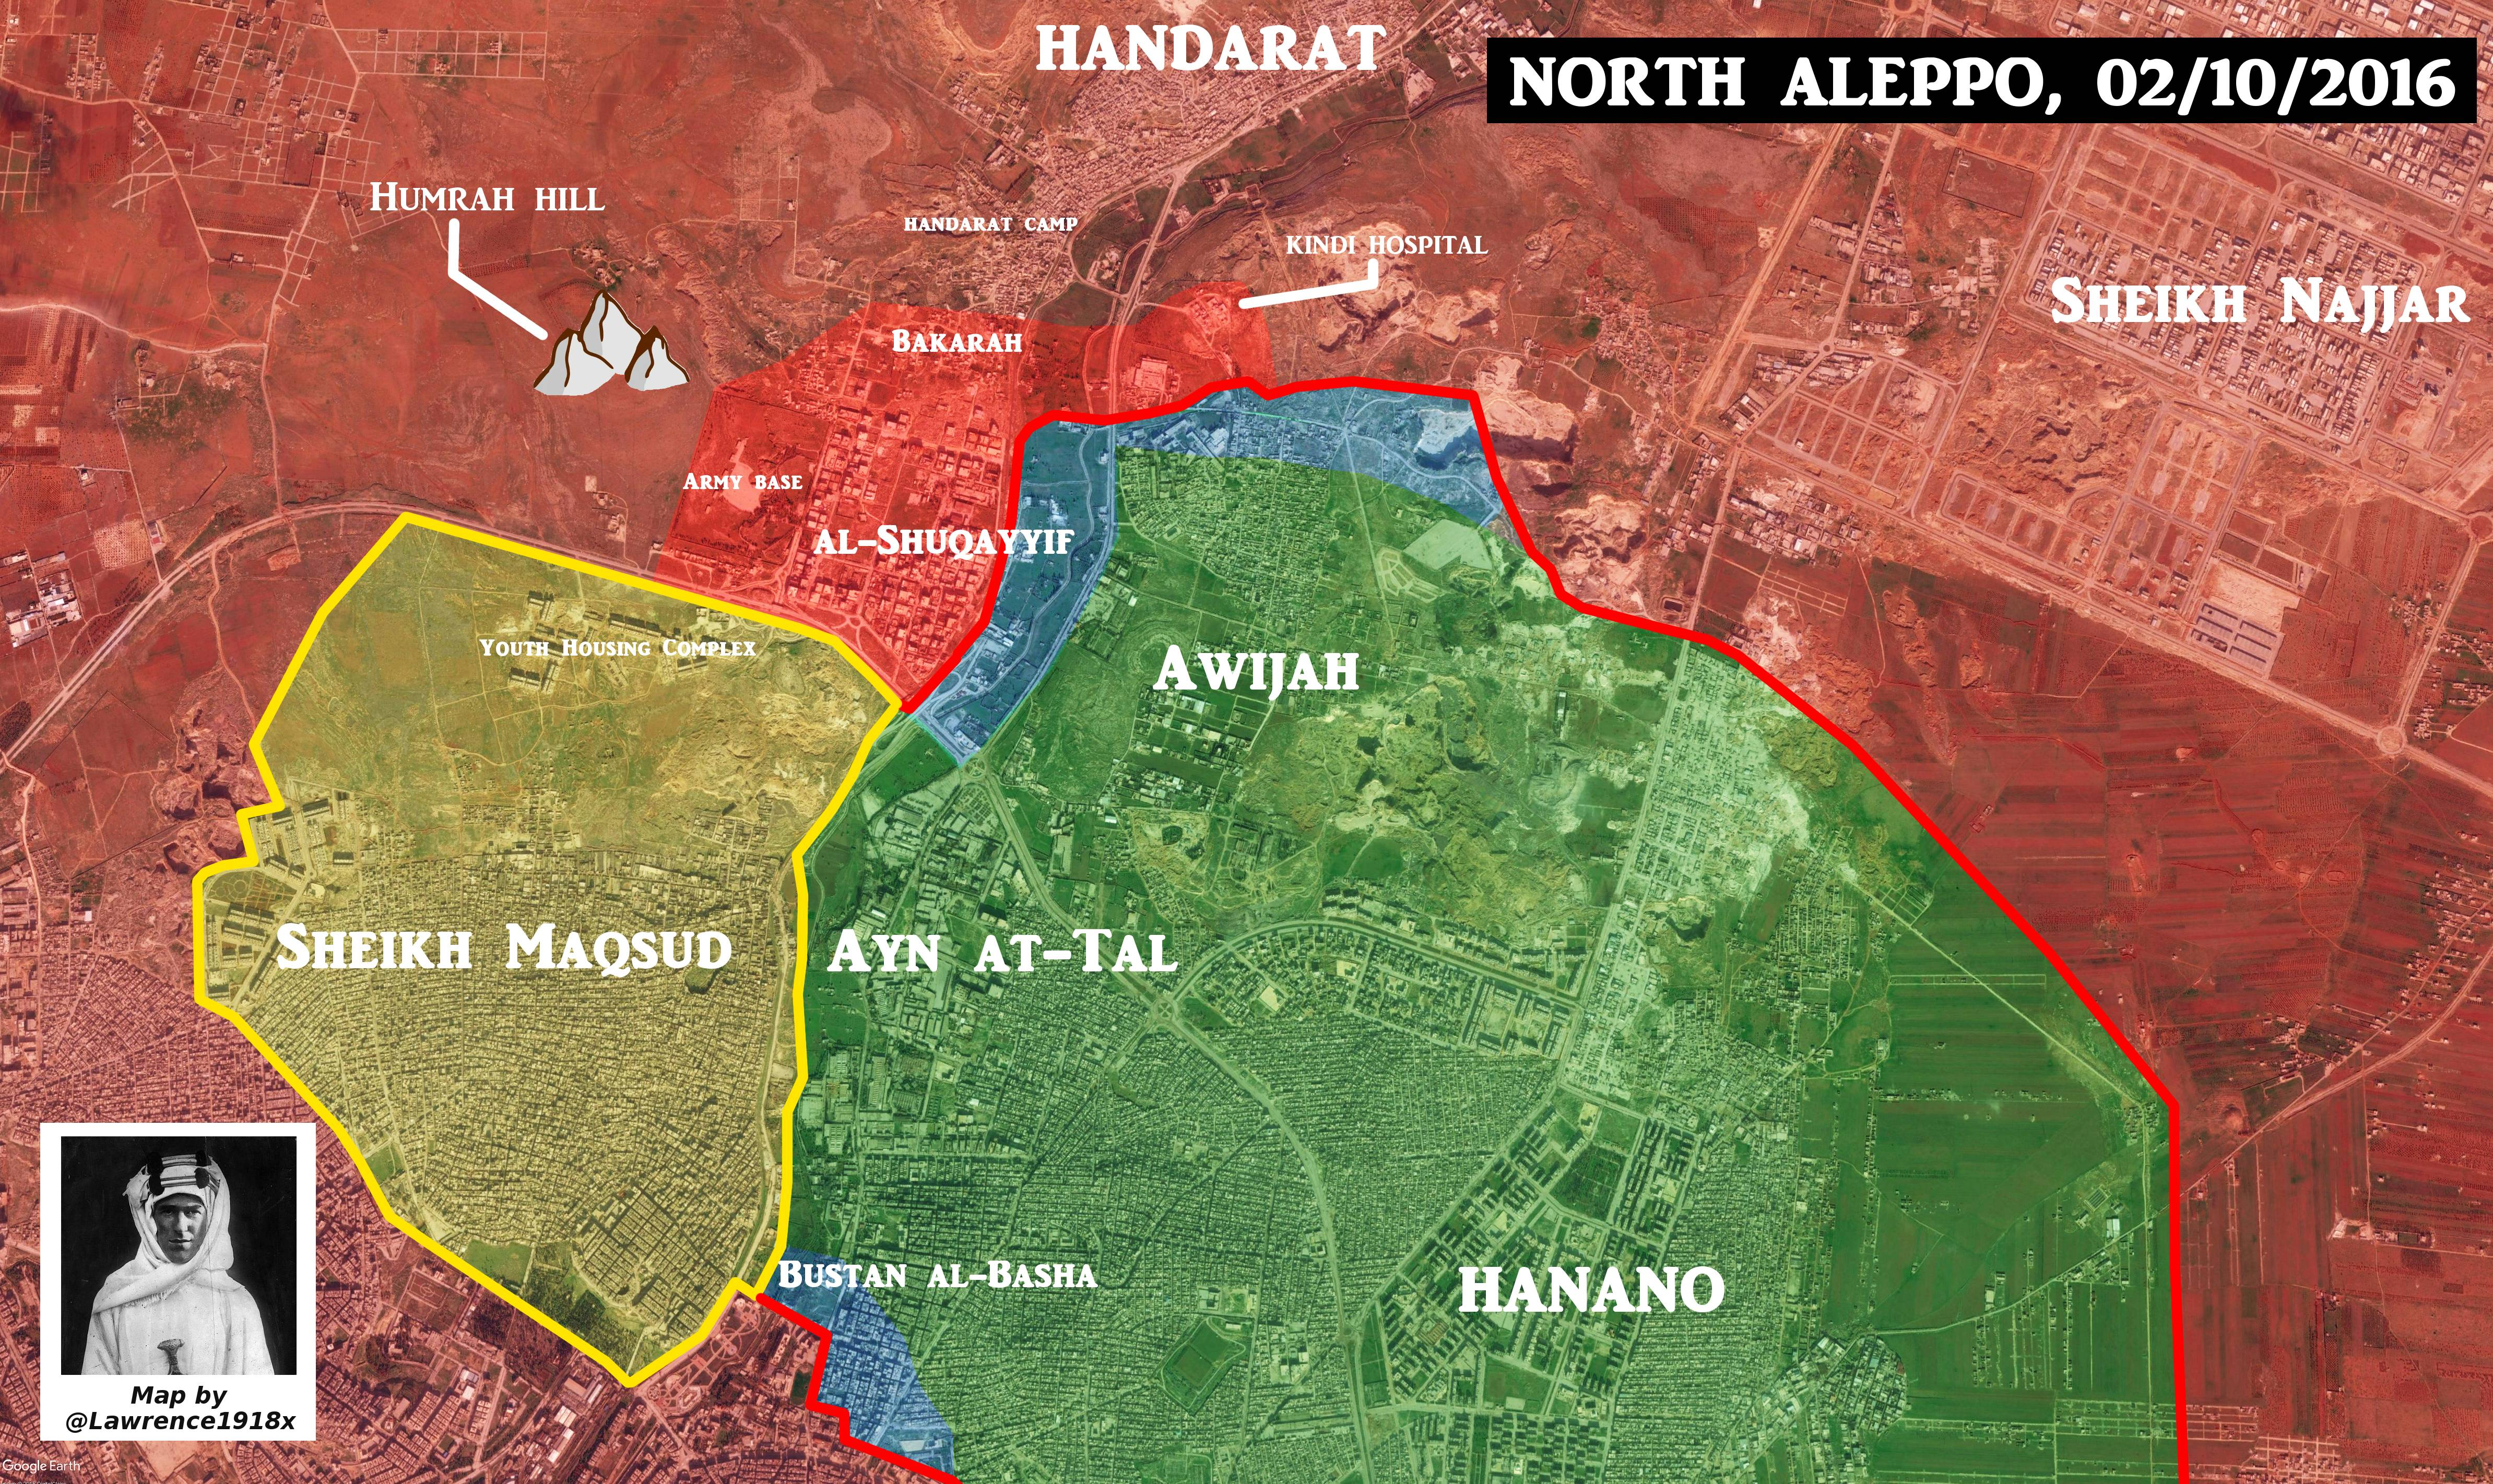 Overview of Military Situation in Aleppo City on October 3, 2016